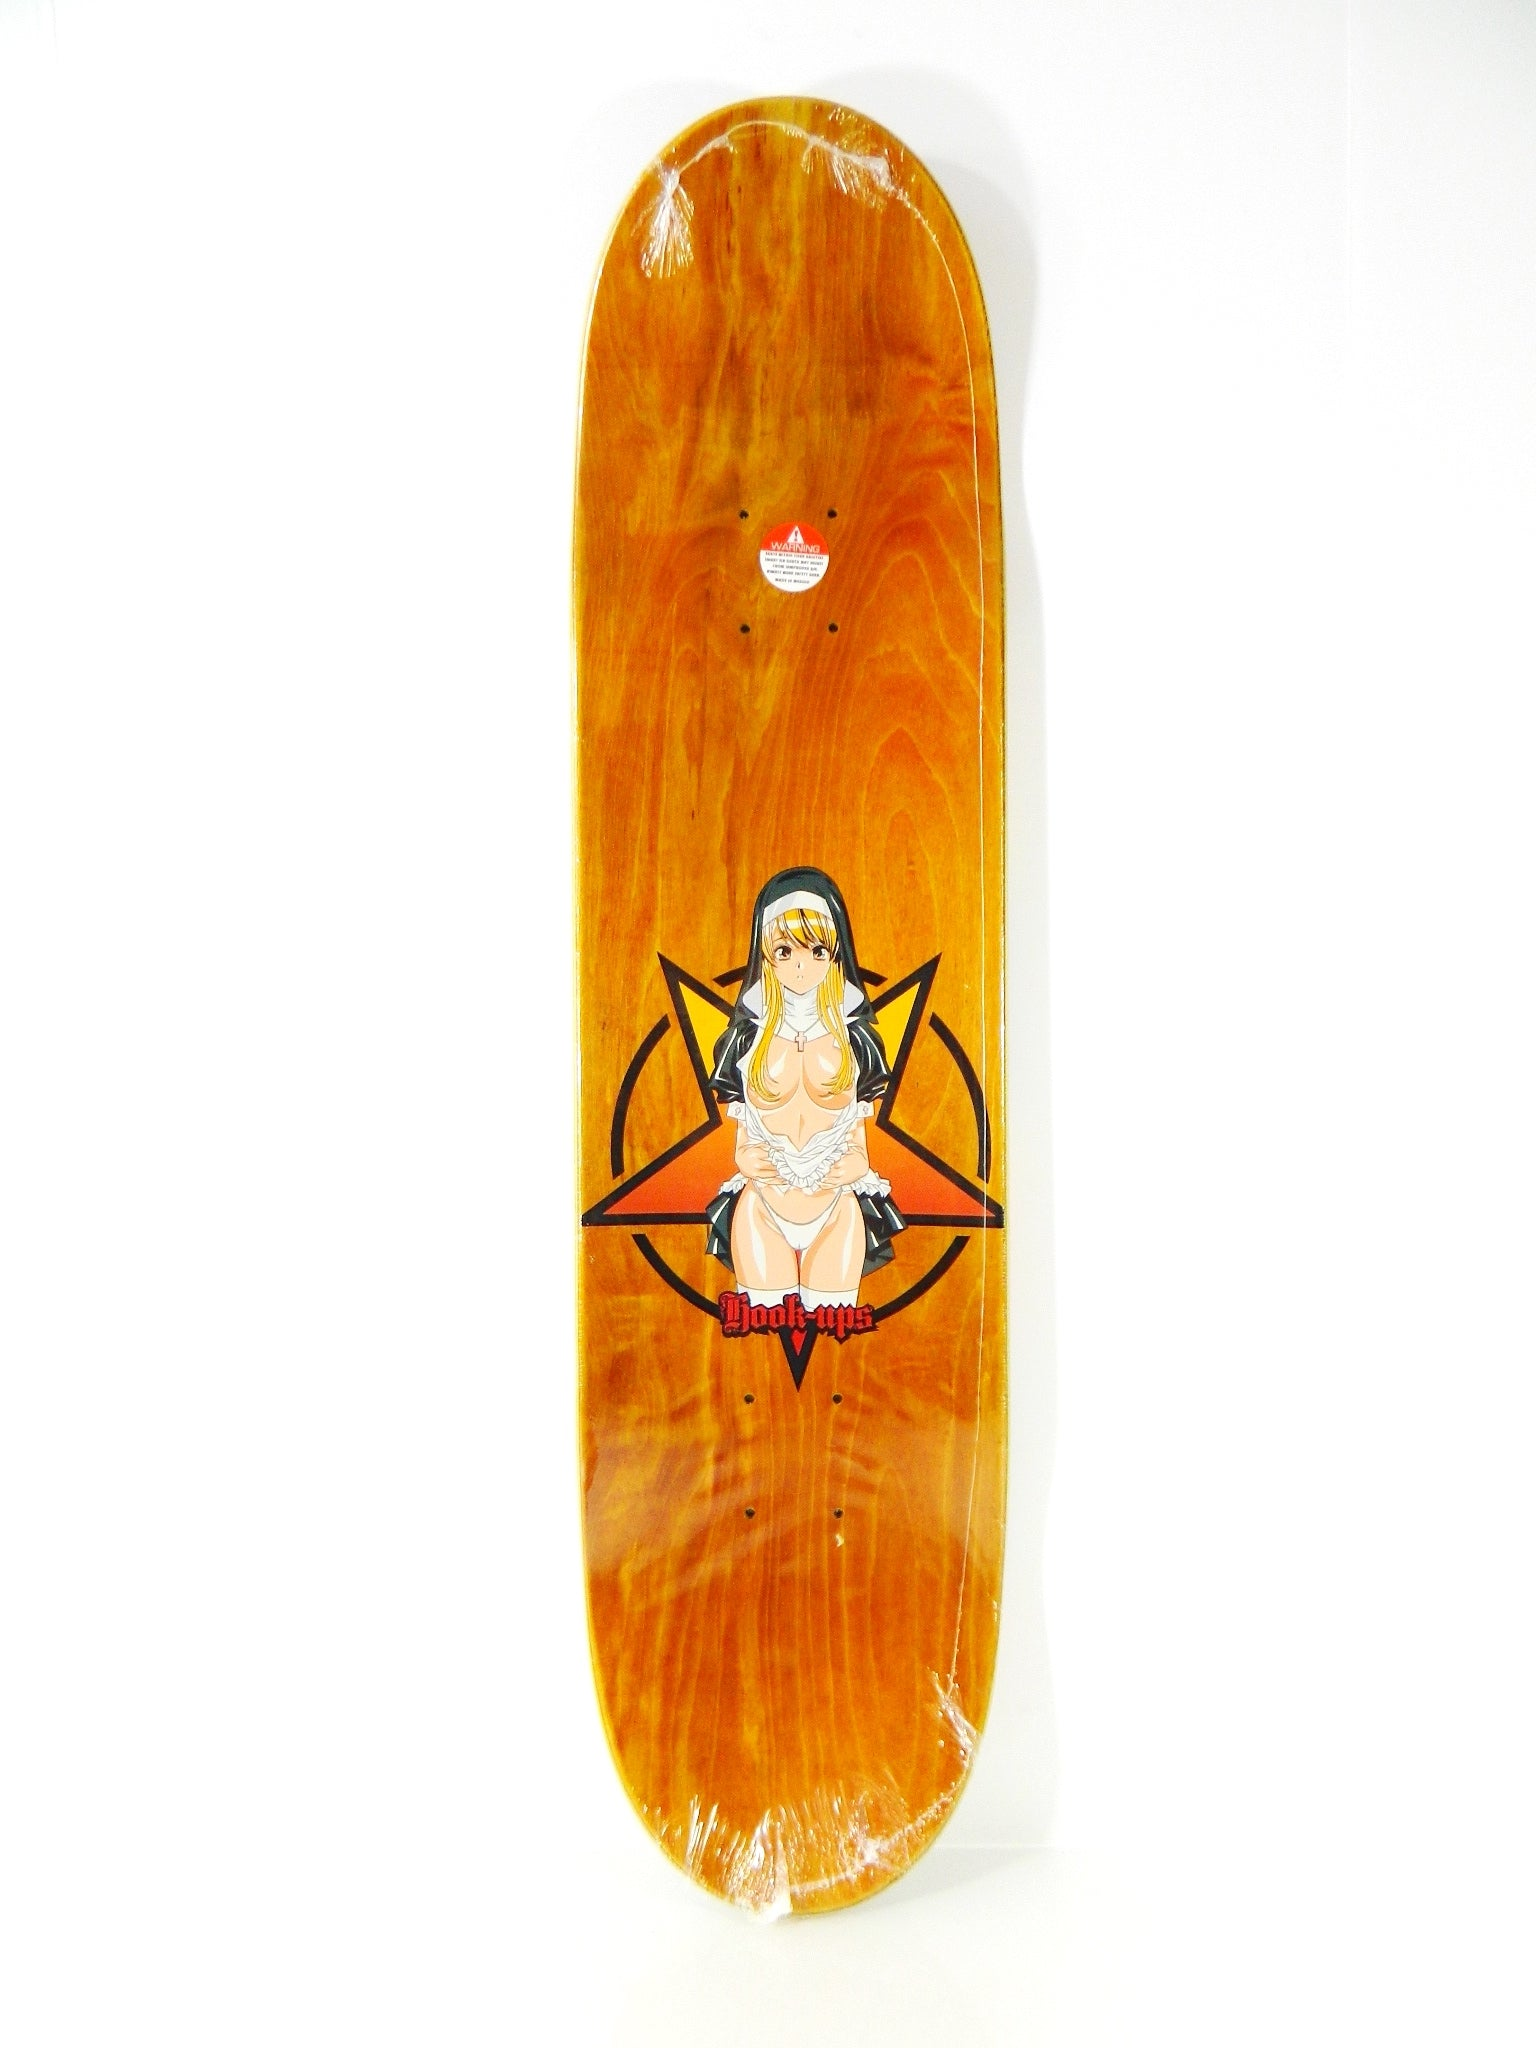 Hook-Ups Nun 8.0 x 31.75 Skateboard Deck